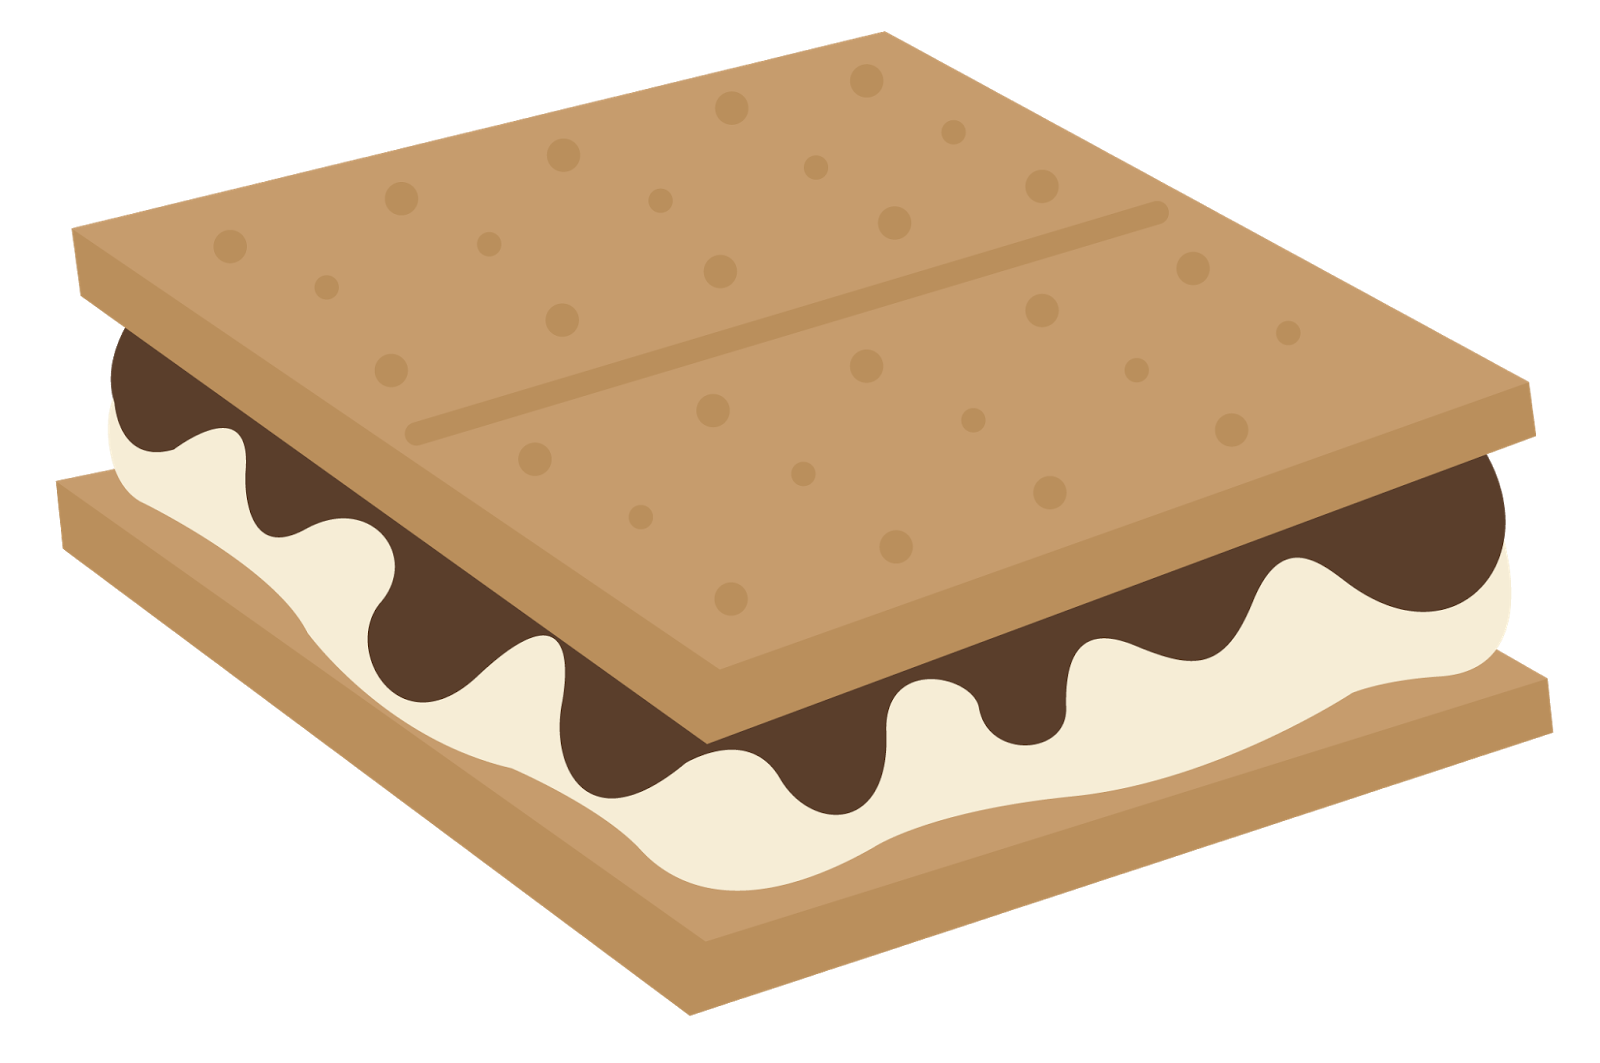 S'mores clipart goodness. S mores group smores